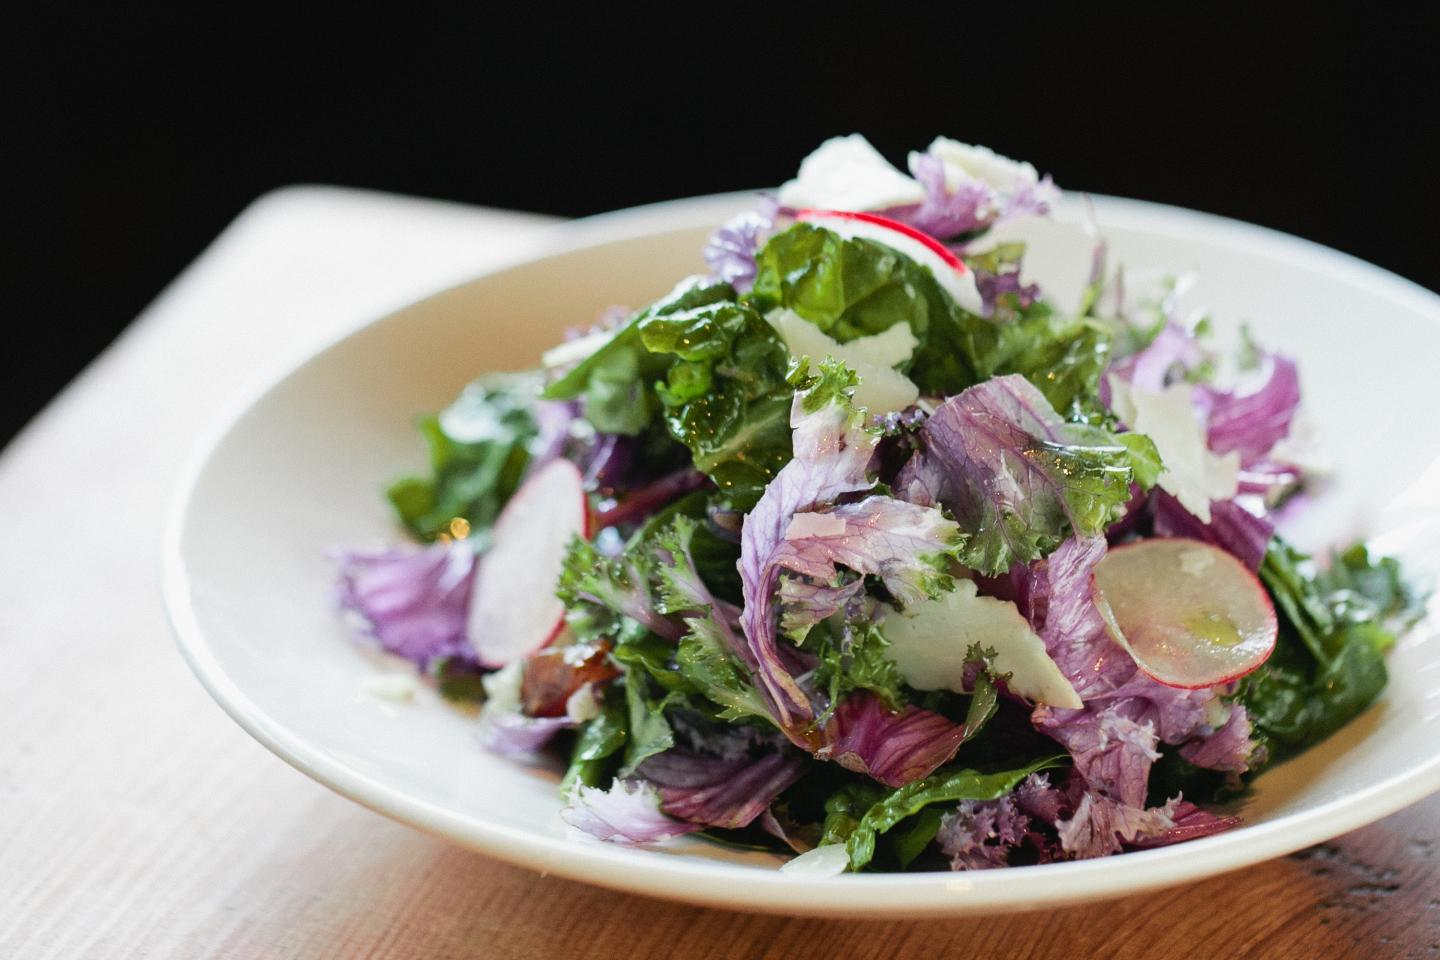 purple kale emerald salad from stella barra